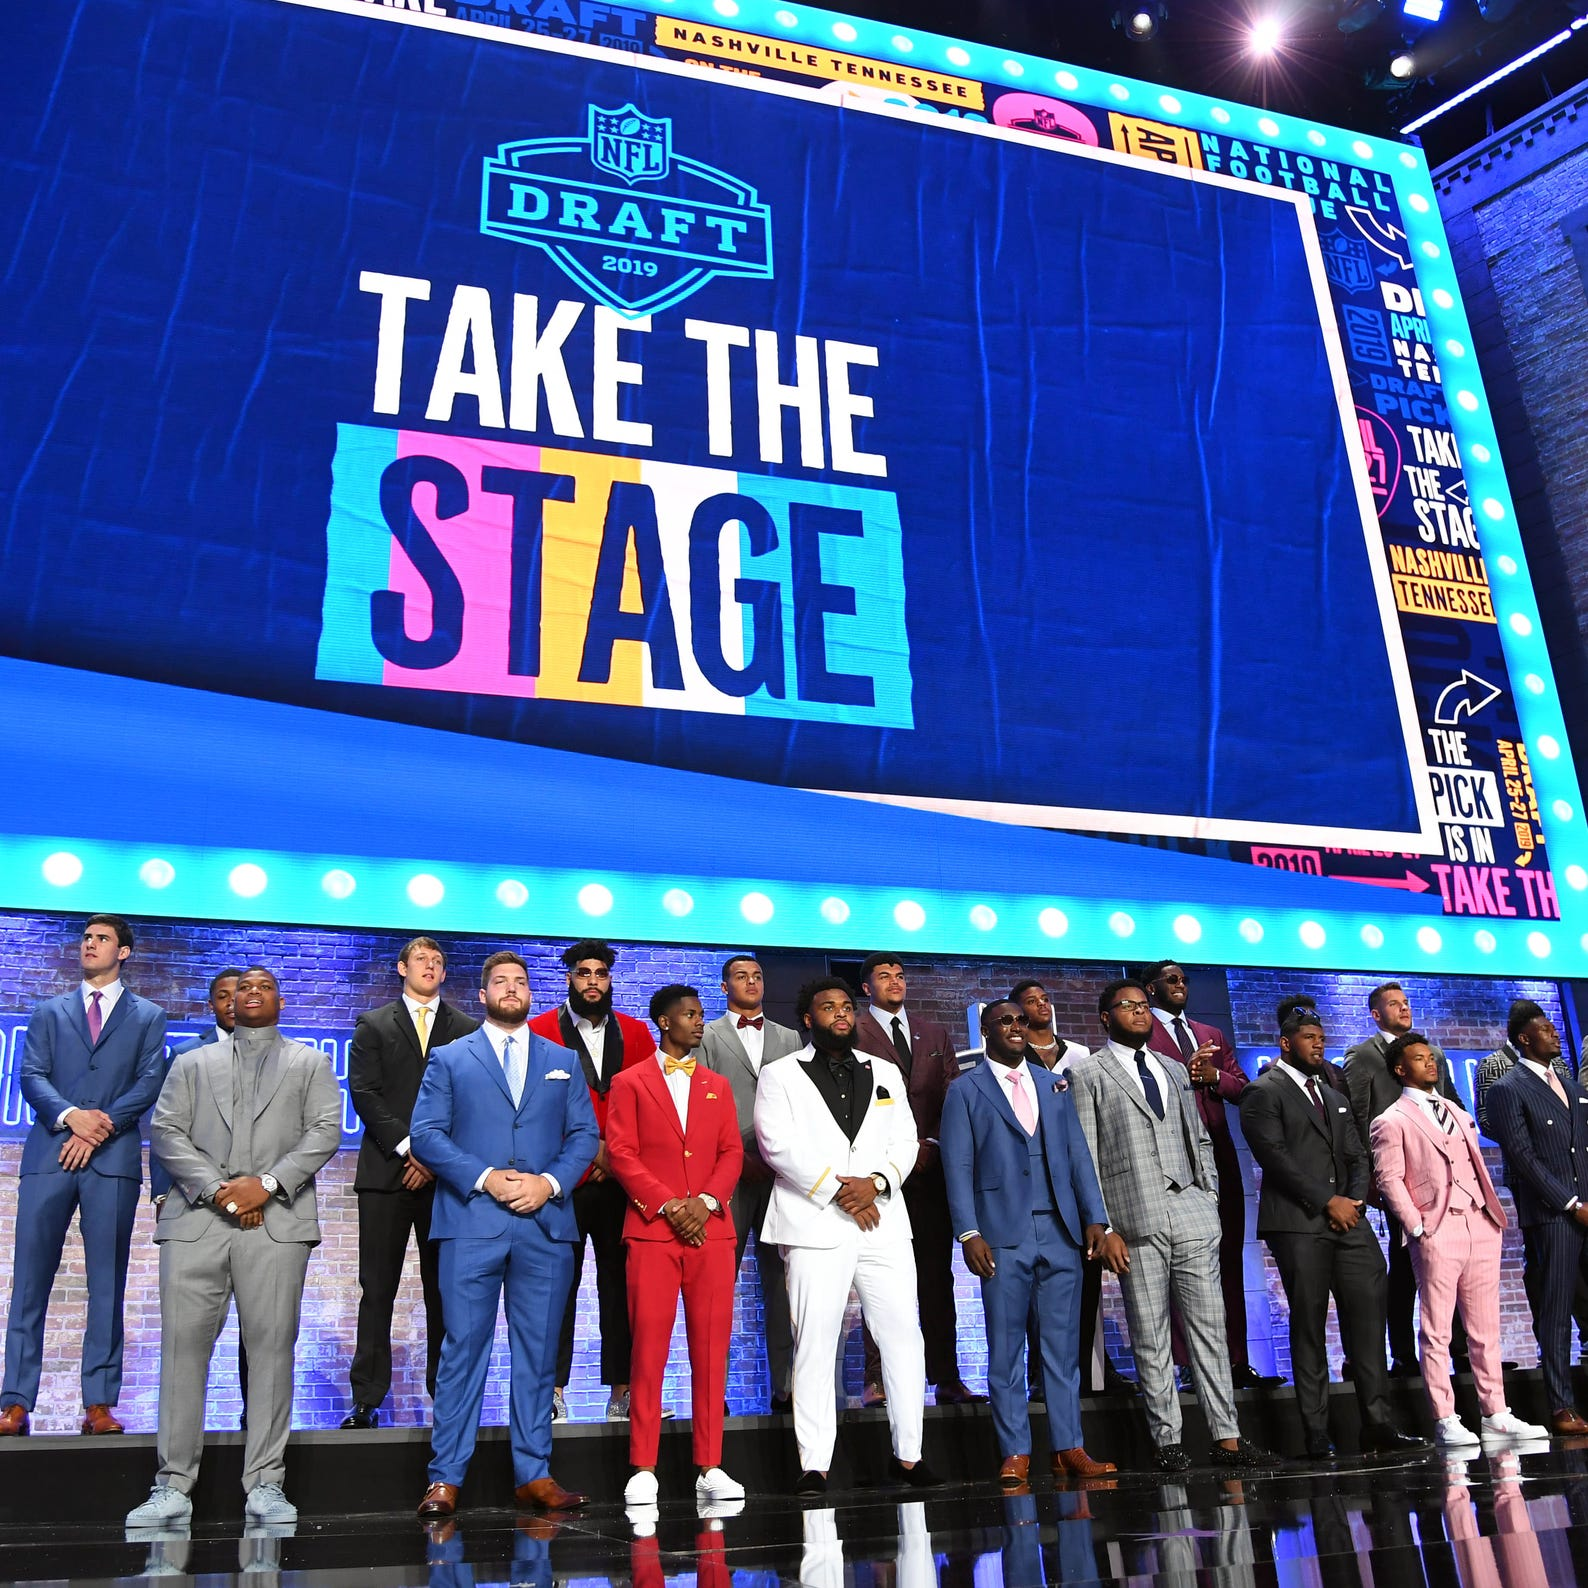 Live blog: 2019 NFL draft updates, pick tracker; Detroit Lions pick 8th